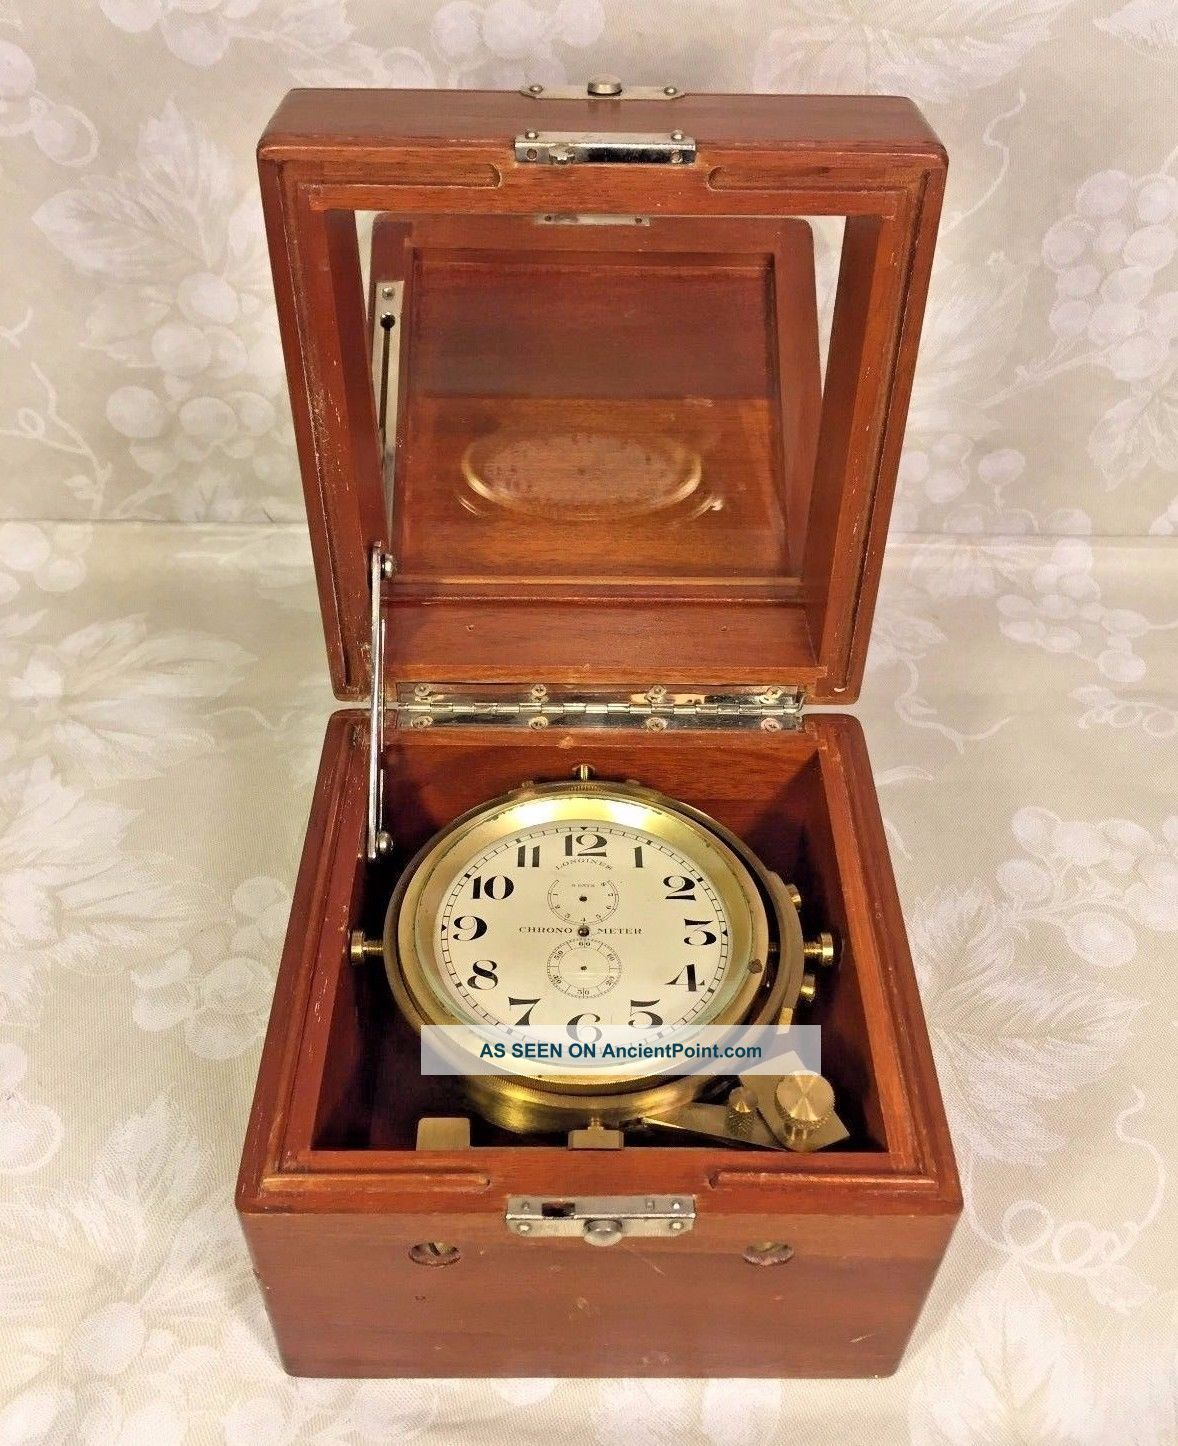 Vtg Longines 8 Day Ship Chronometer In Wood Case Not Running Project Clock Clocks photo